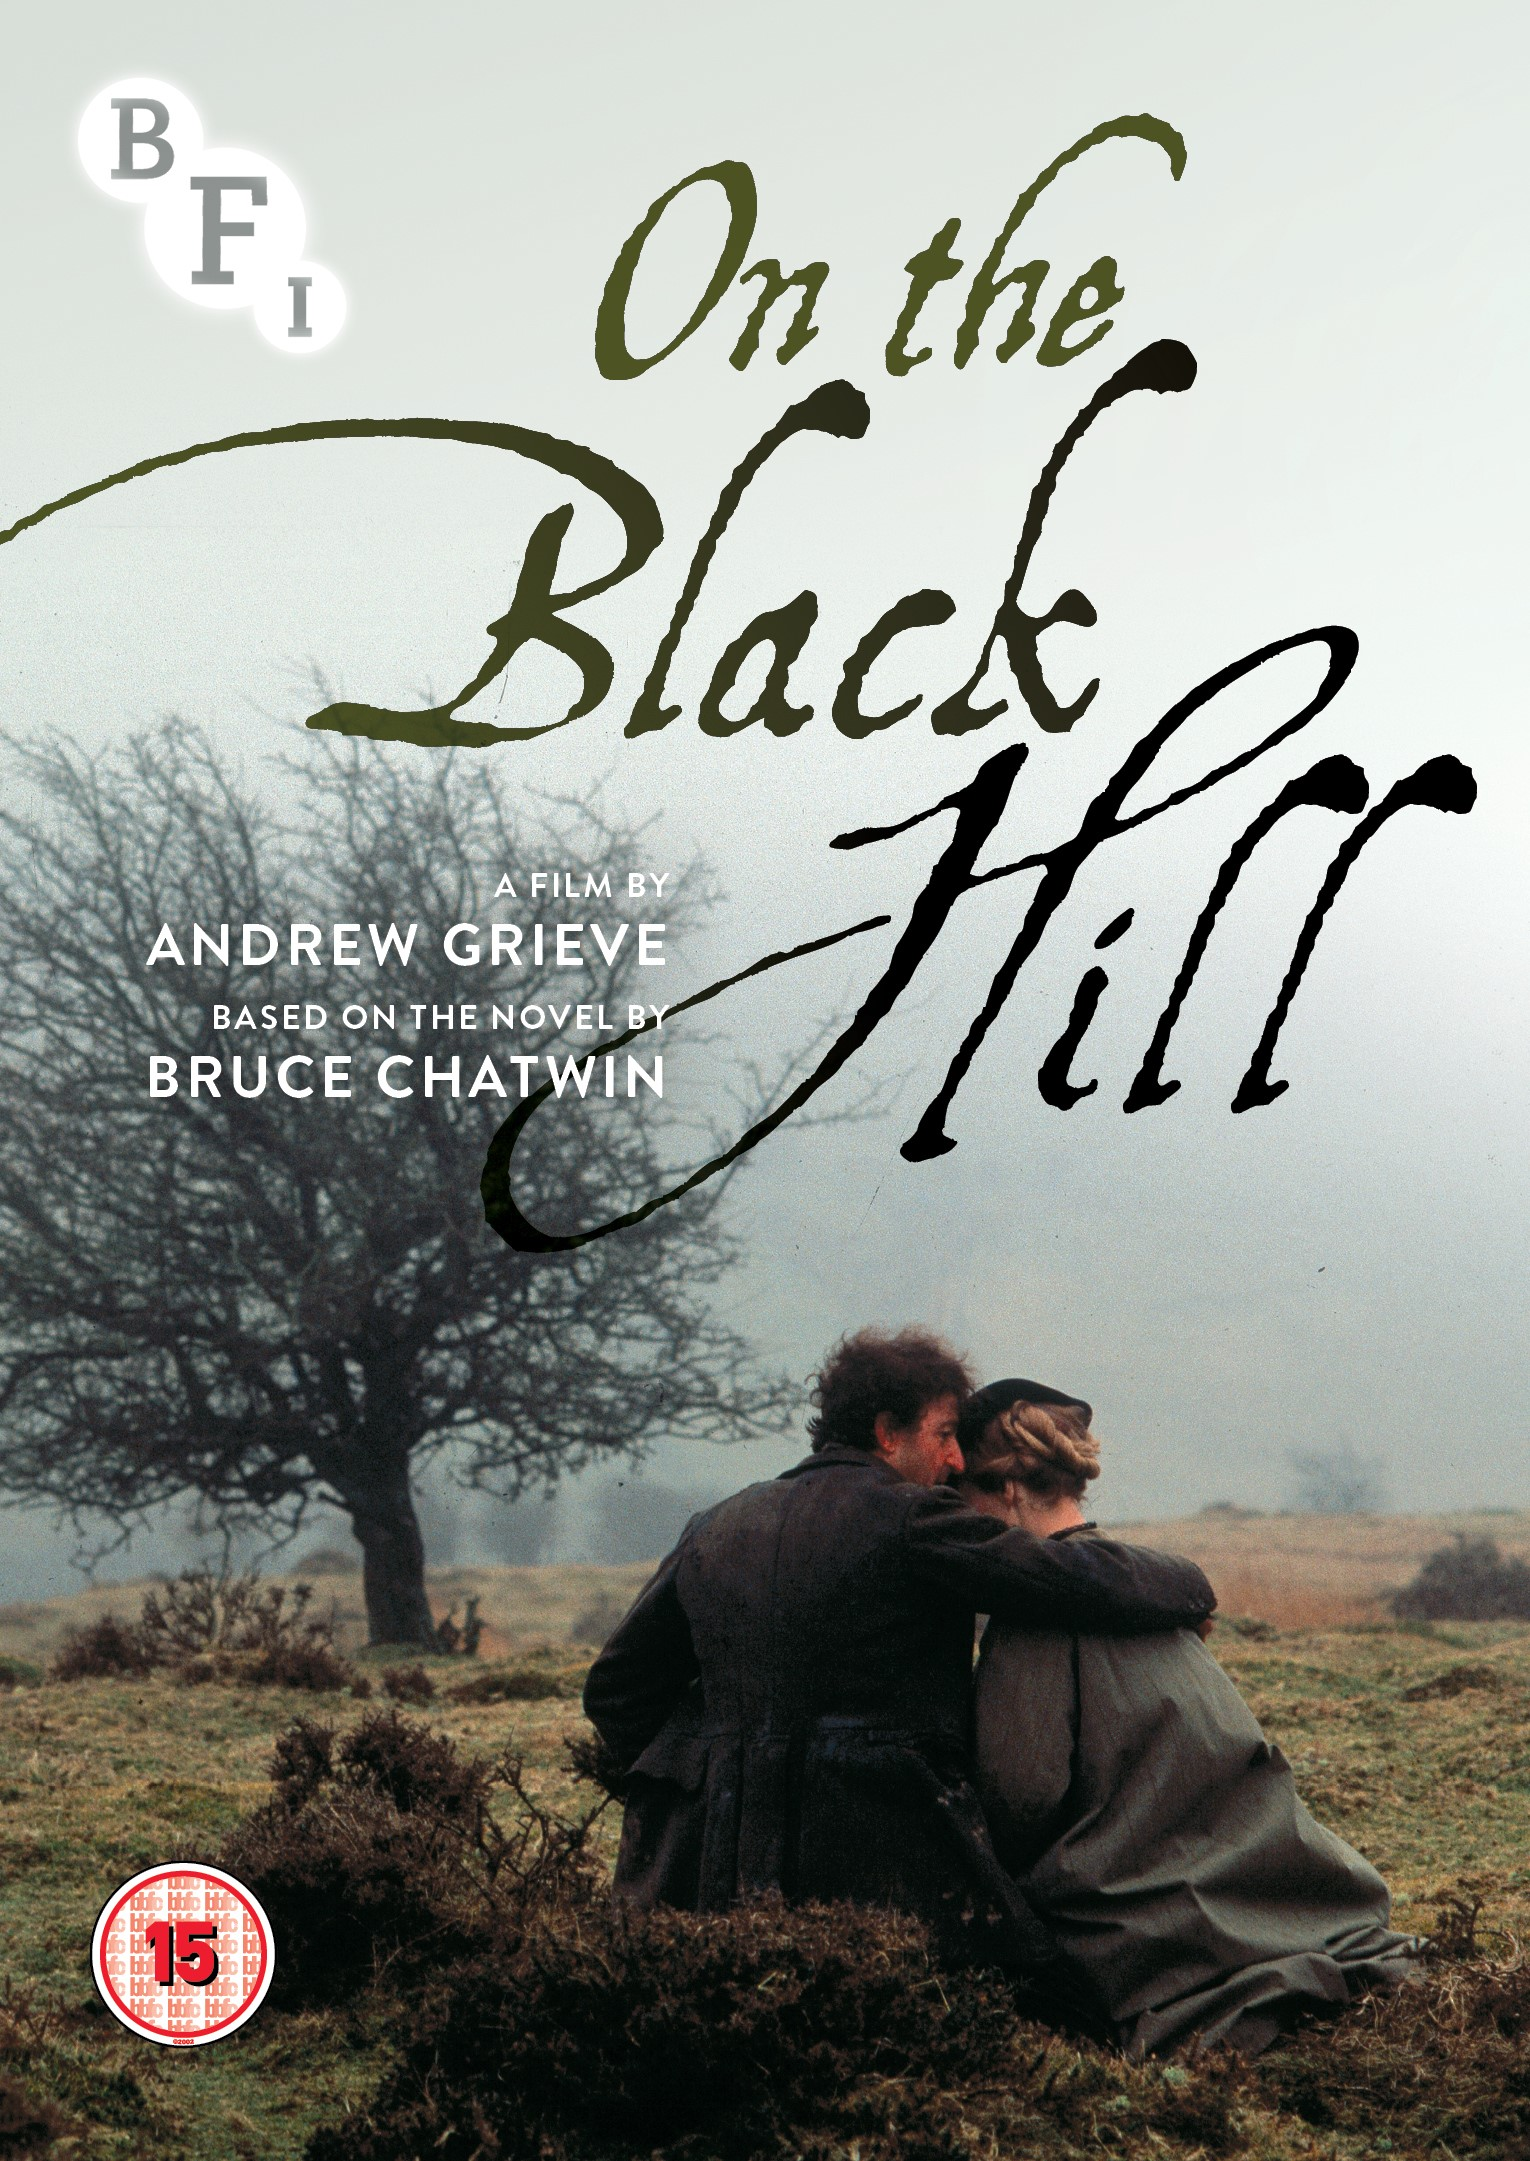 Buy On the Black Hill (Dual Edition)